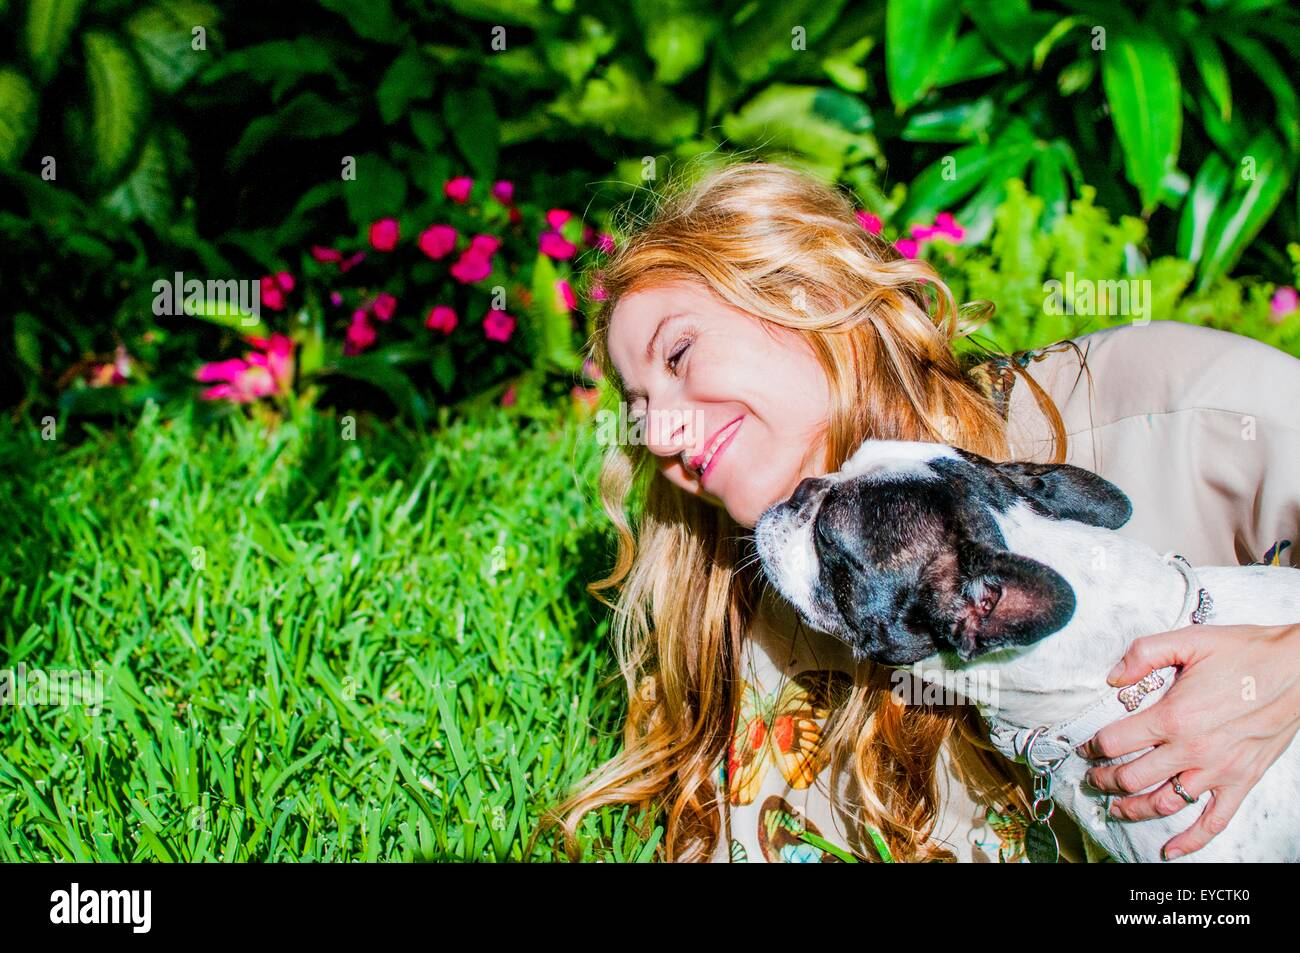 Dog licking woman's face in garden Stock Photo